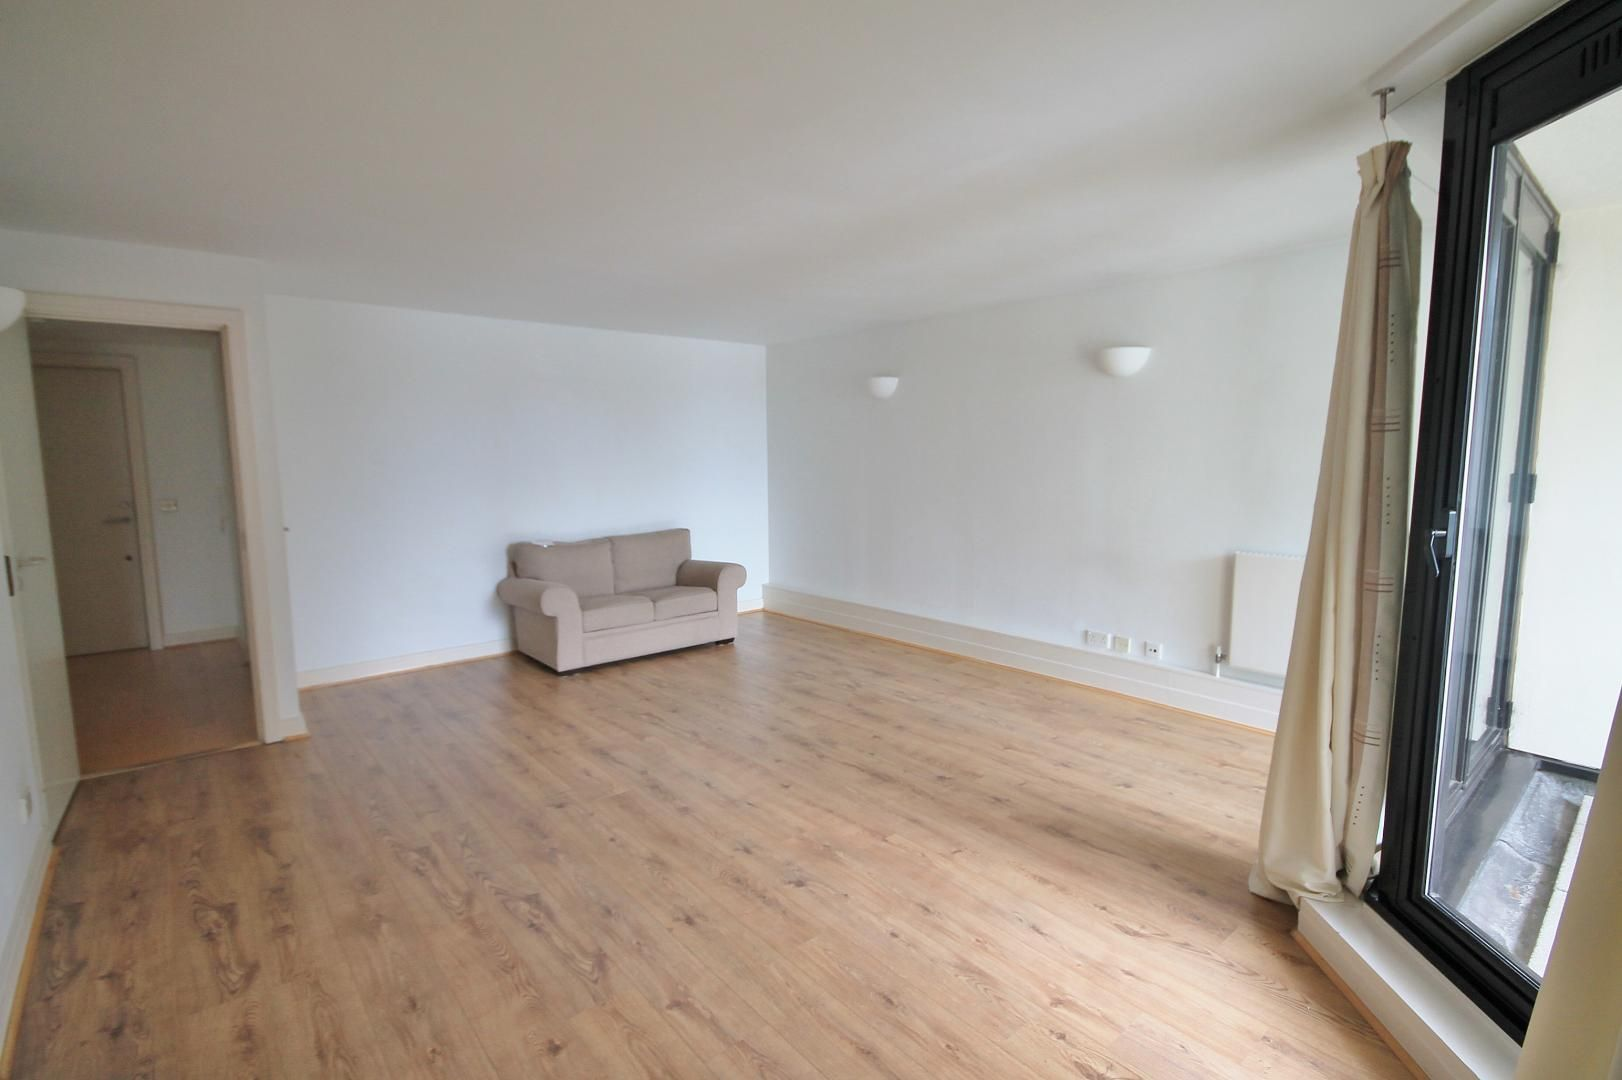 2 bed flat for sale in Burrells Wharf Square - Property Image 1